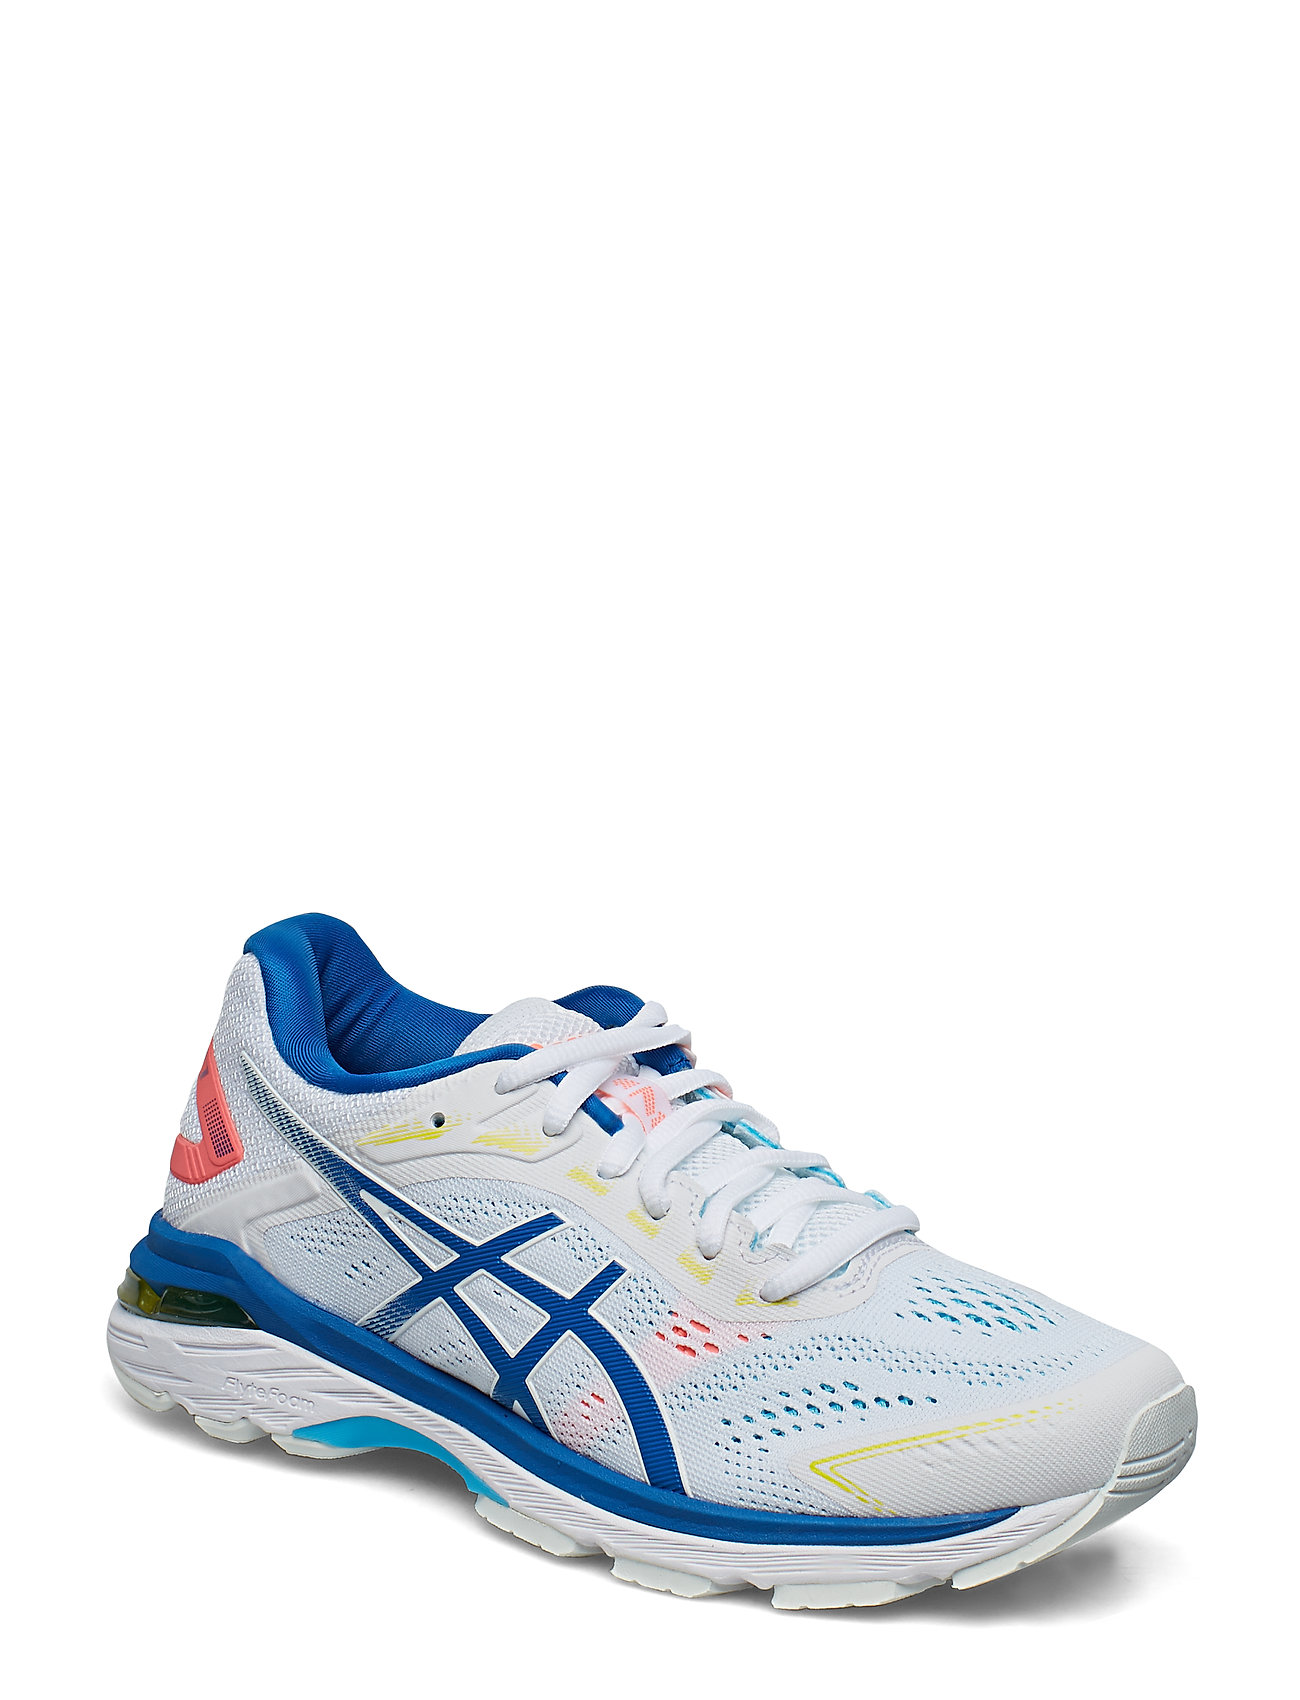 ASICS Gt-2000 7 Shoes Sport Shoes Running Shoes Weiß ASICS